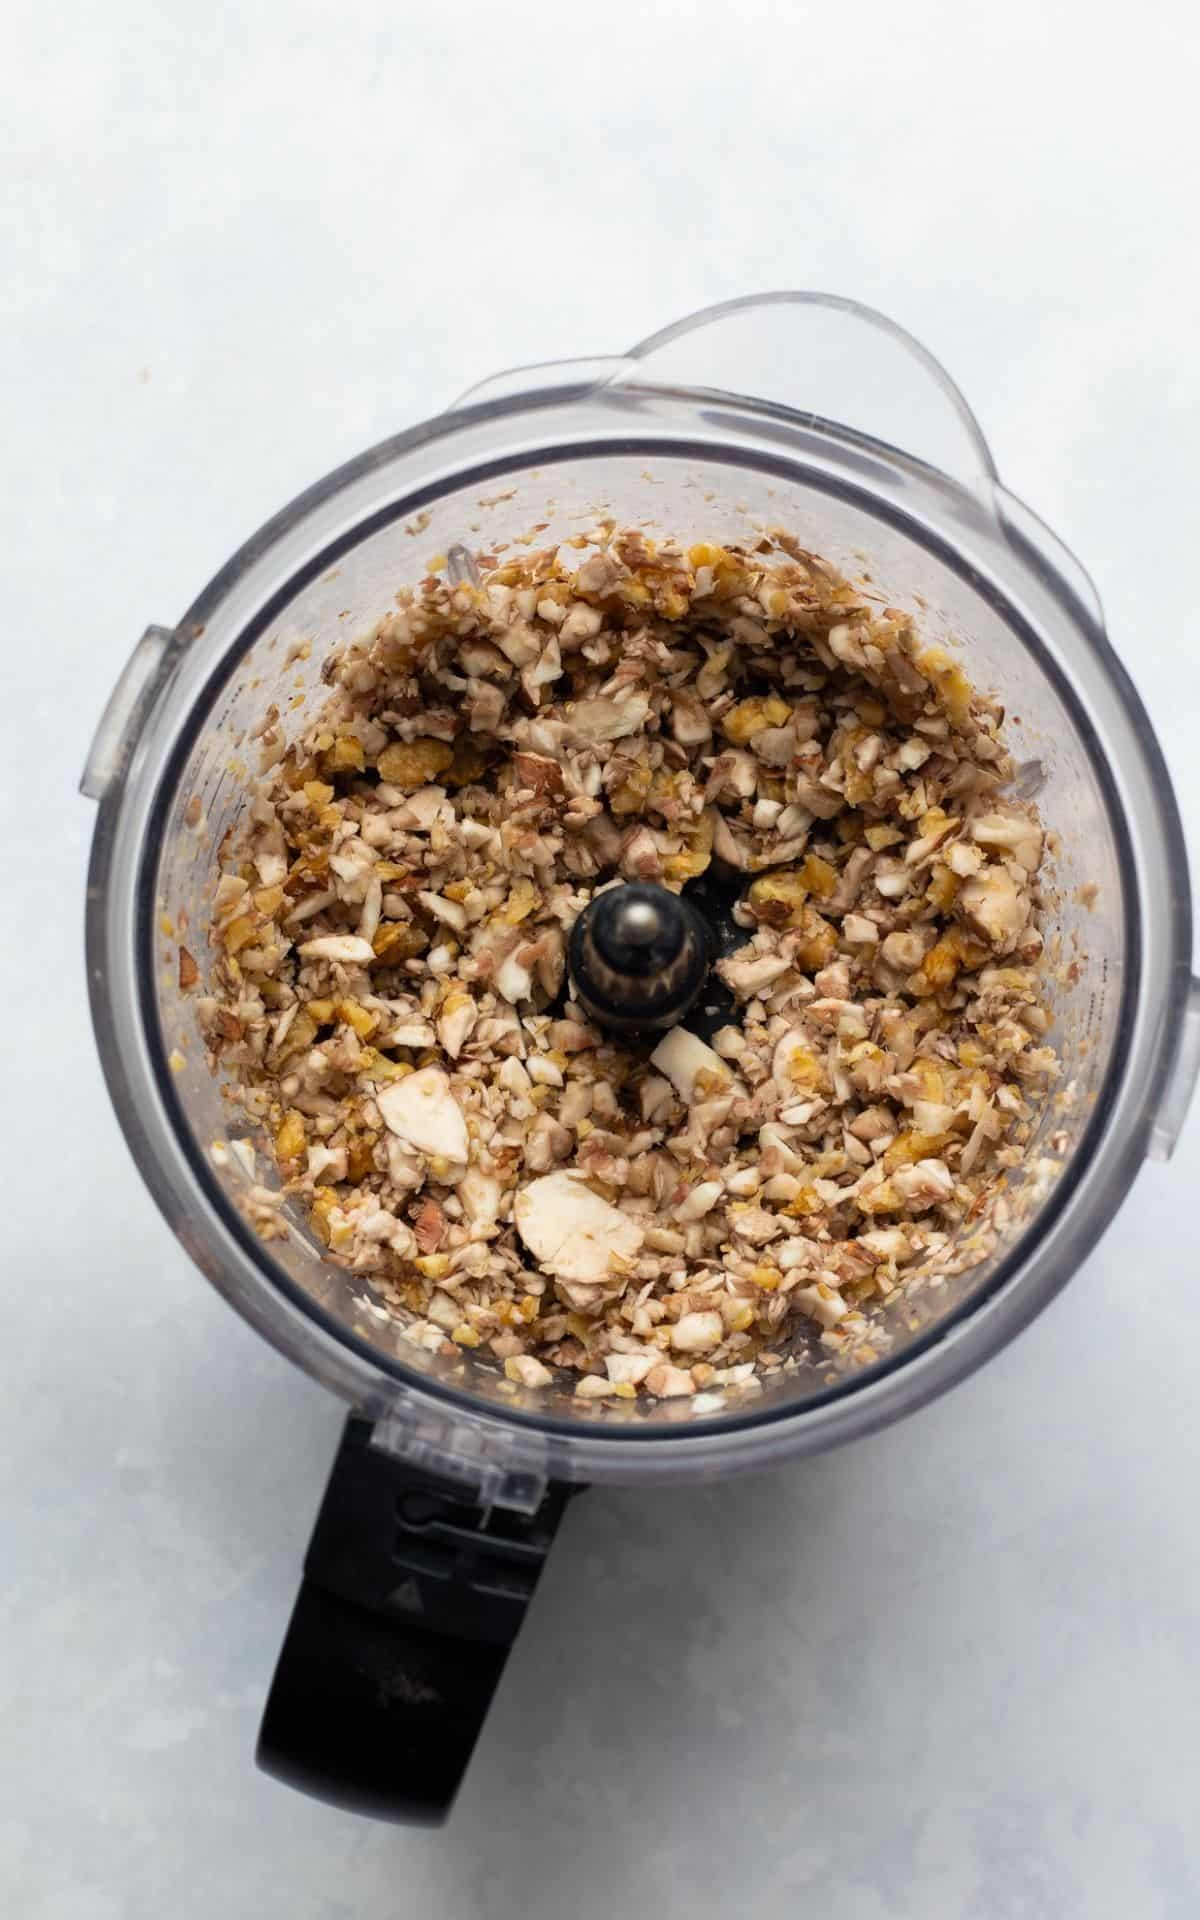 walnut and mushroom mince in a food processor, blended into crumbs